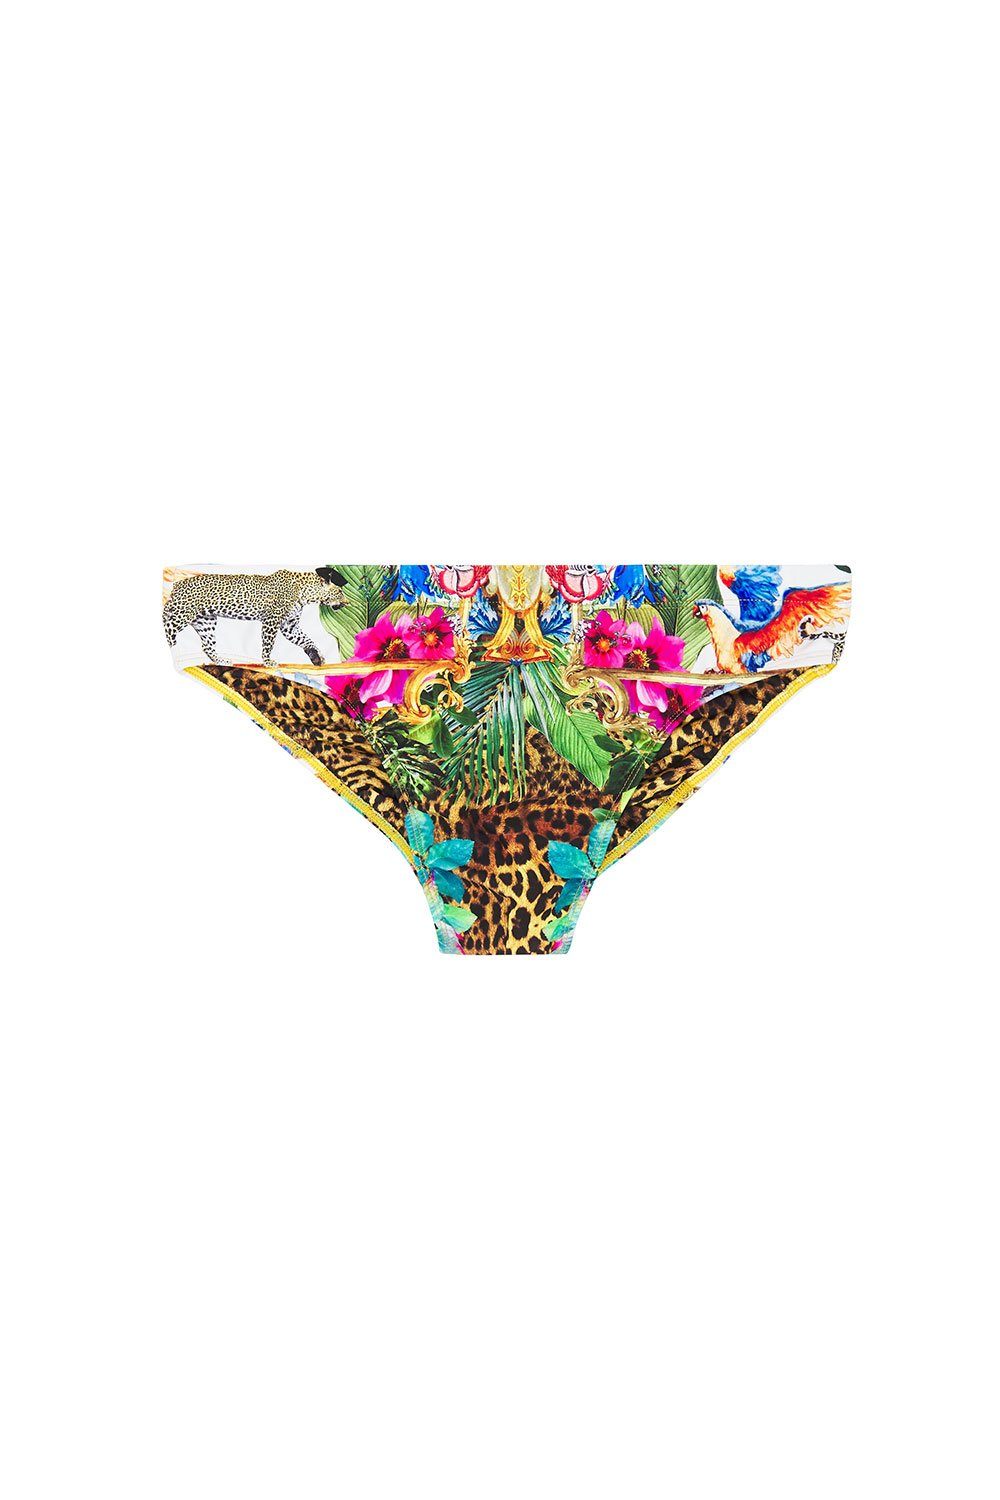 MENS SWIM BRIEF CHAMPAGNE COAST